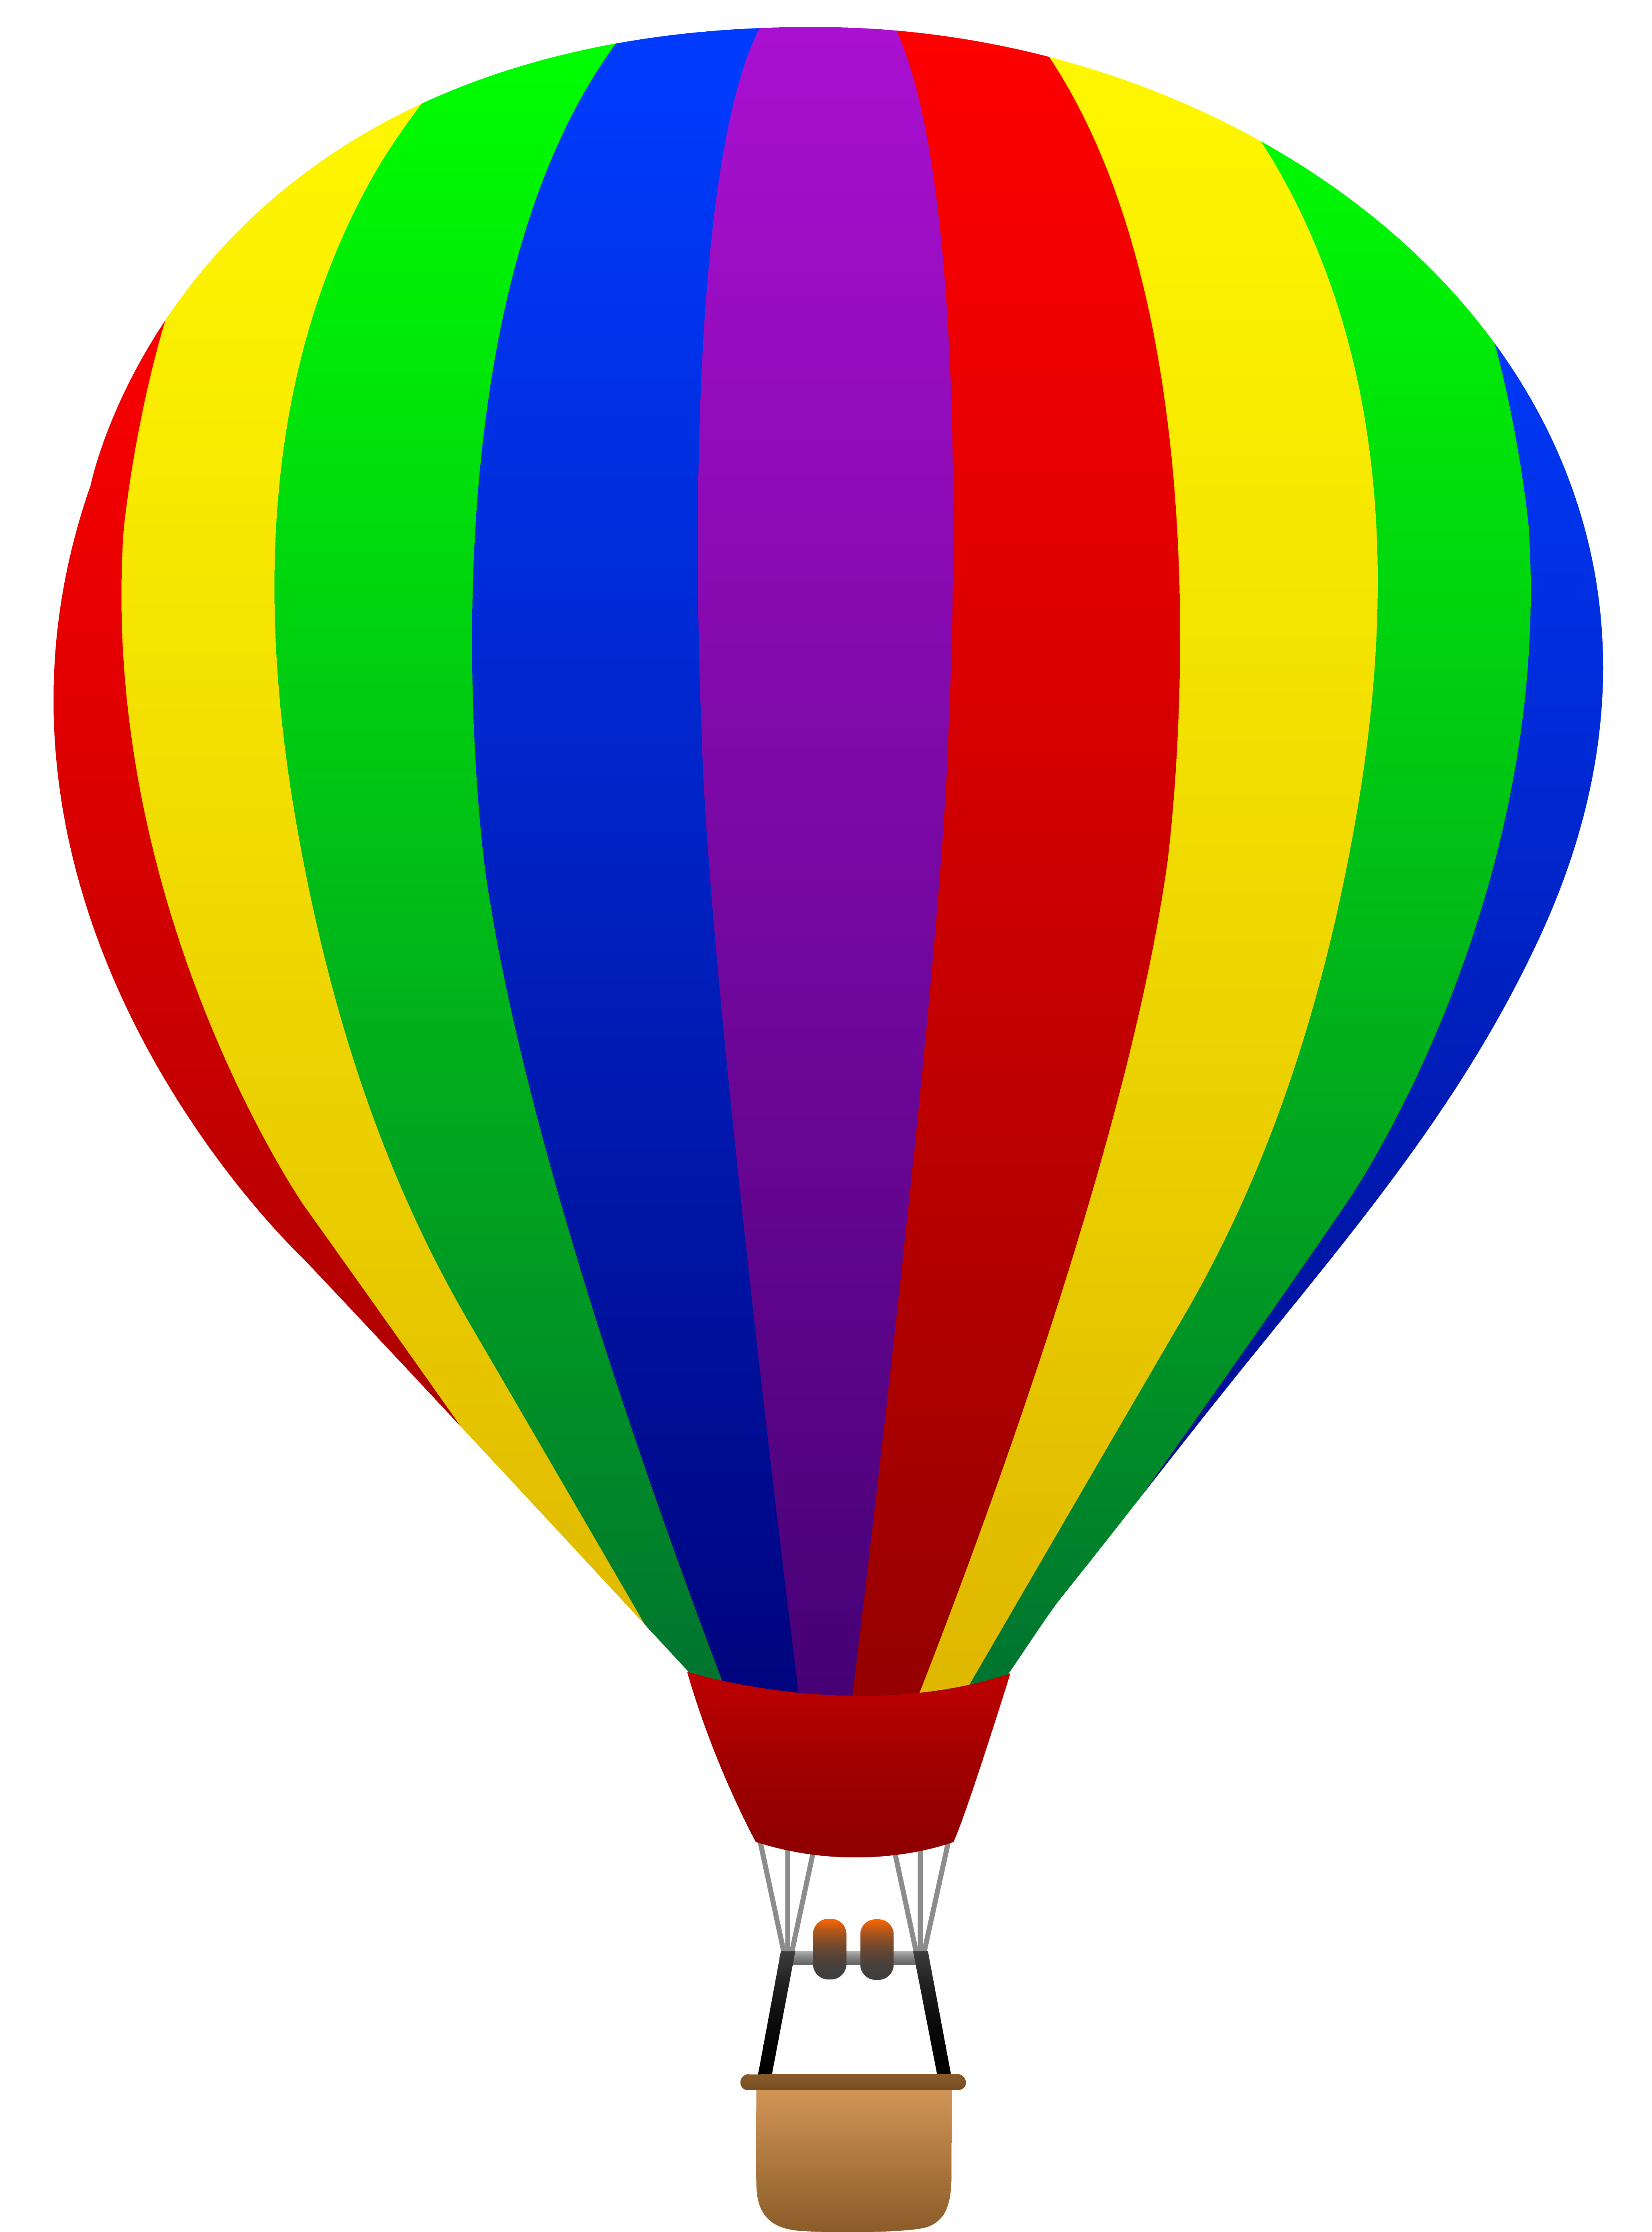 Balloon clipart hotair Art air striped fun rainbow